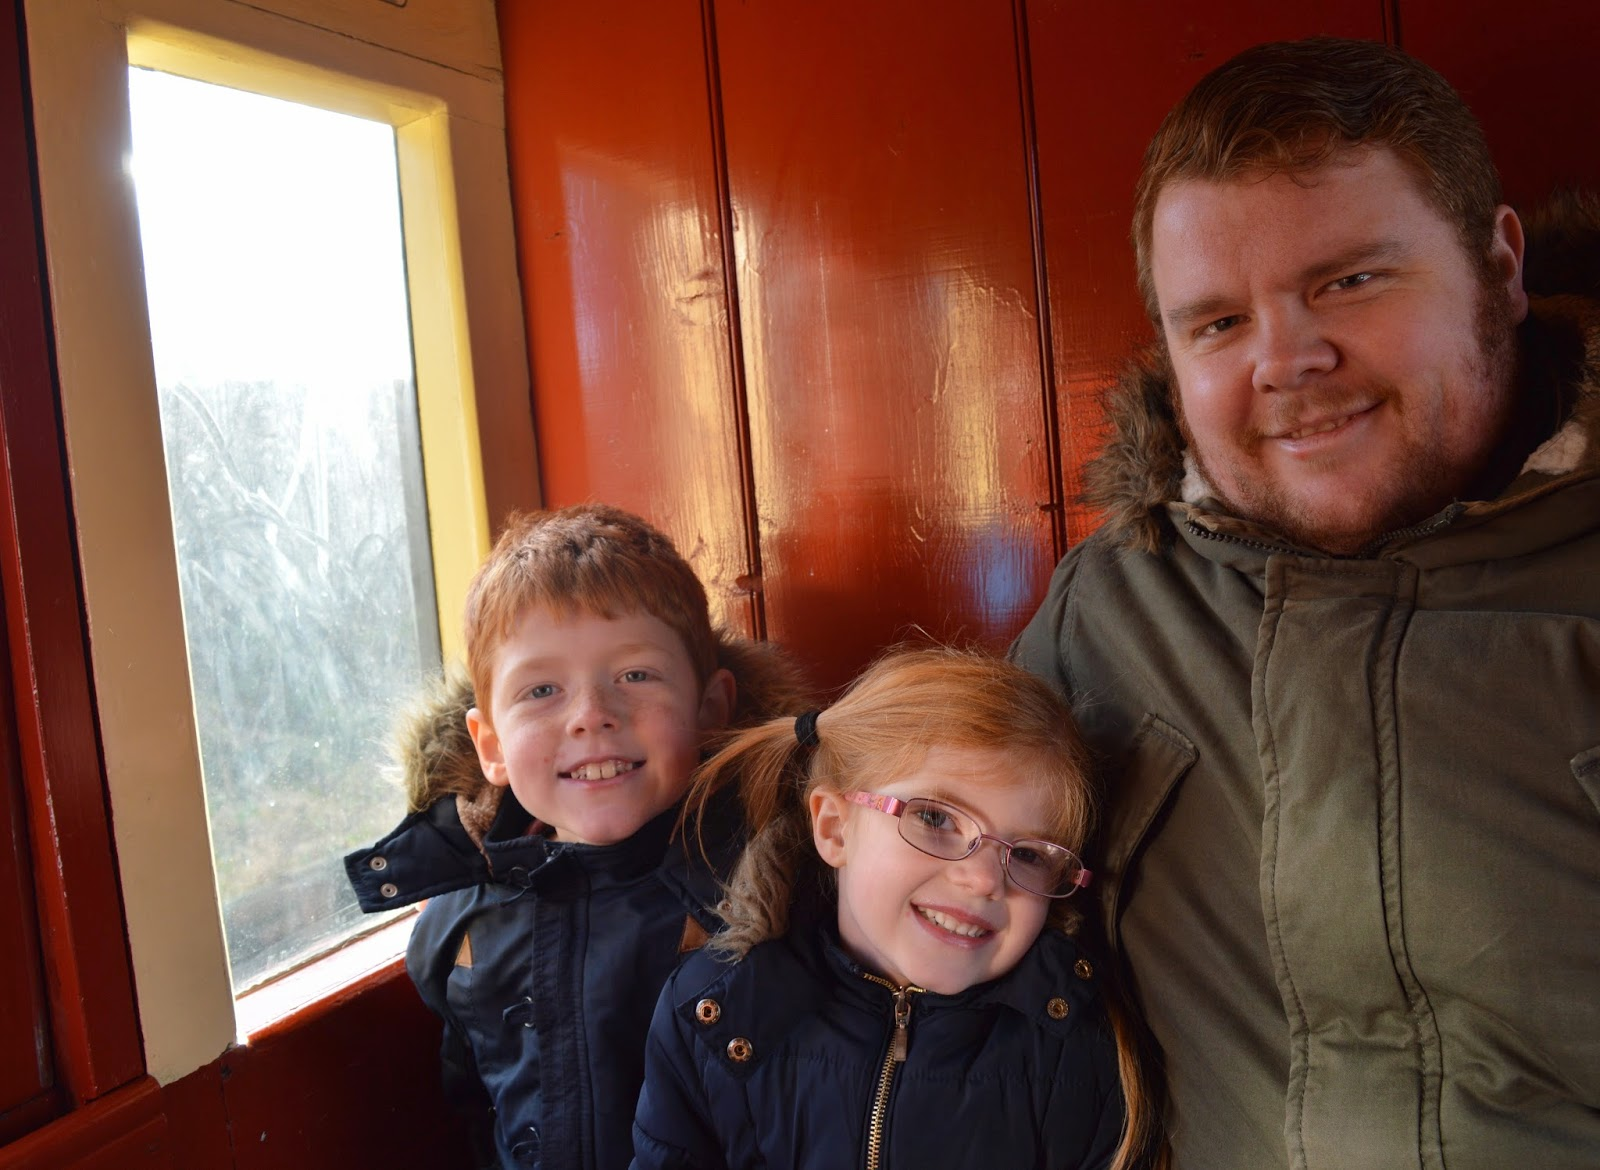 The Original North Pole Express | Tanfield Railway - A North East 'Santa Train' review  - train carriage